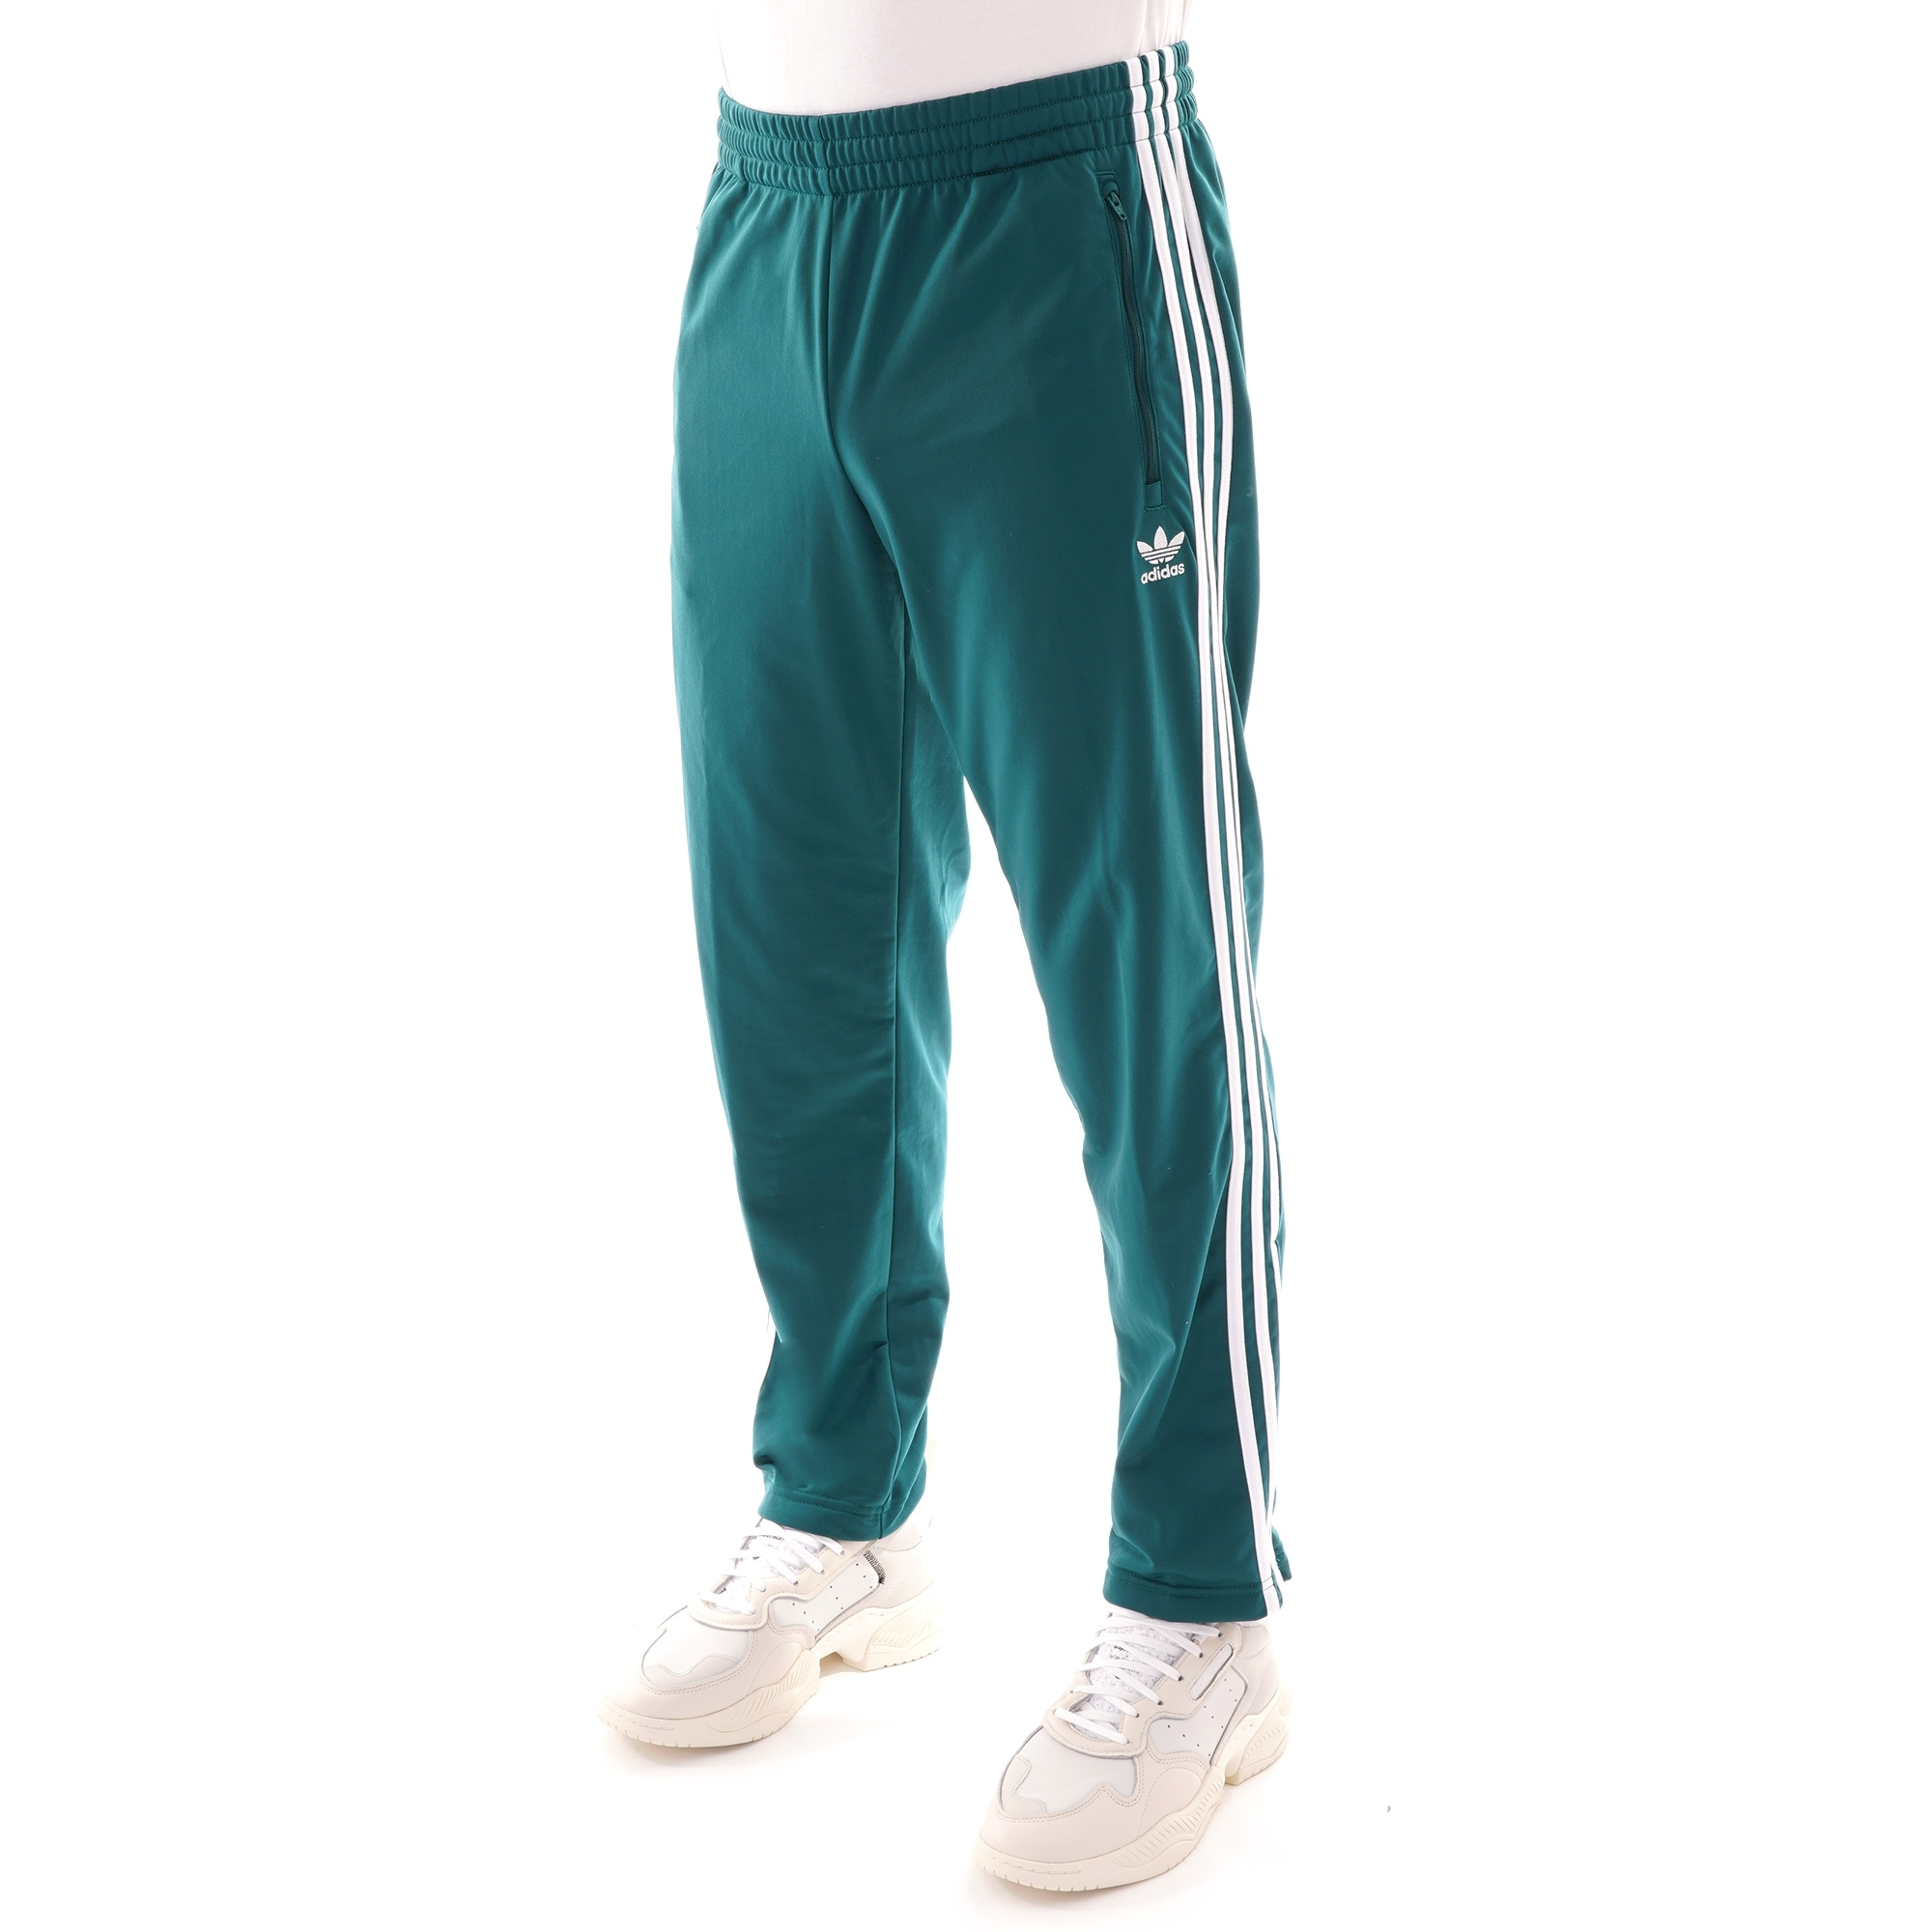 adidas firebird pants